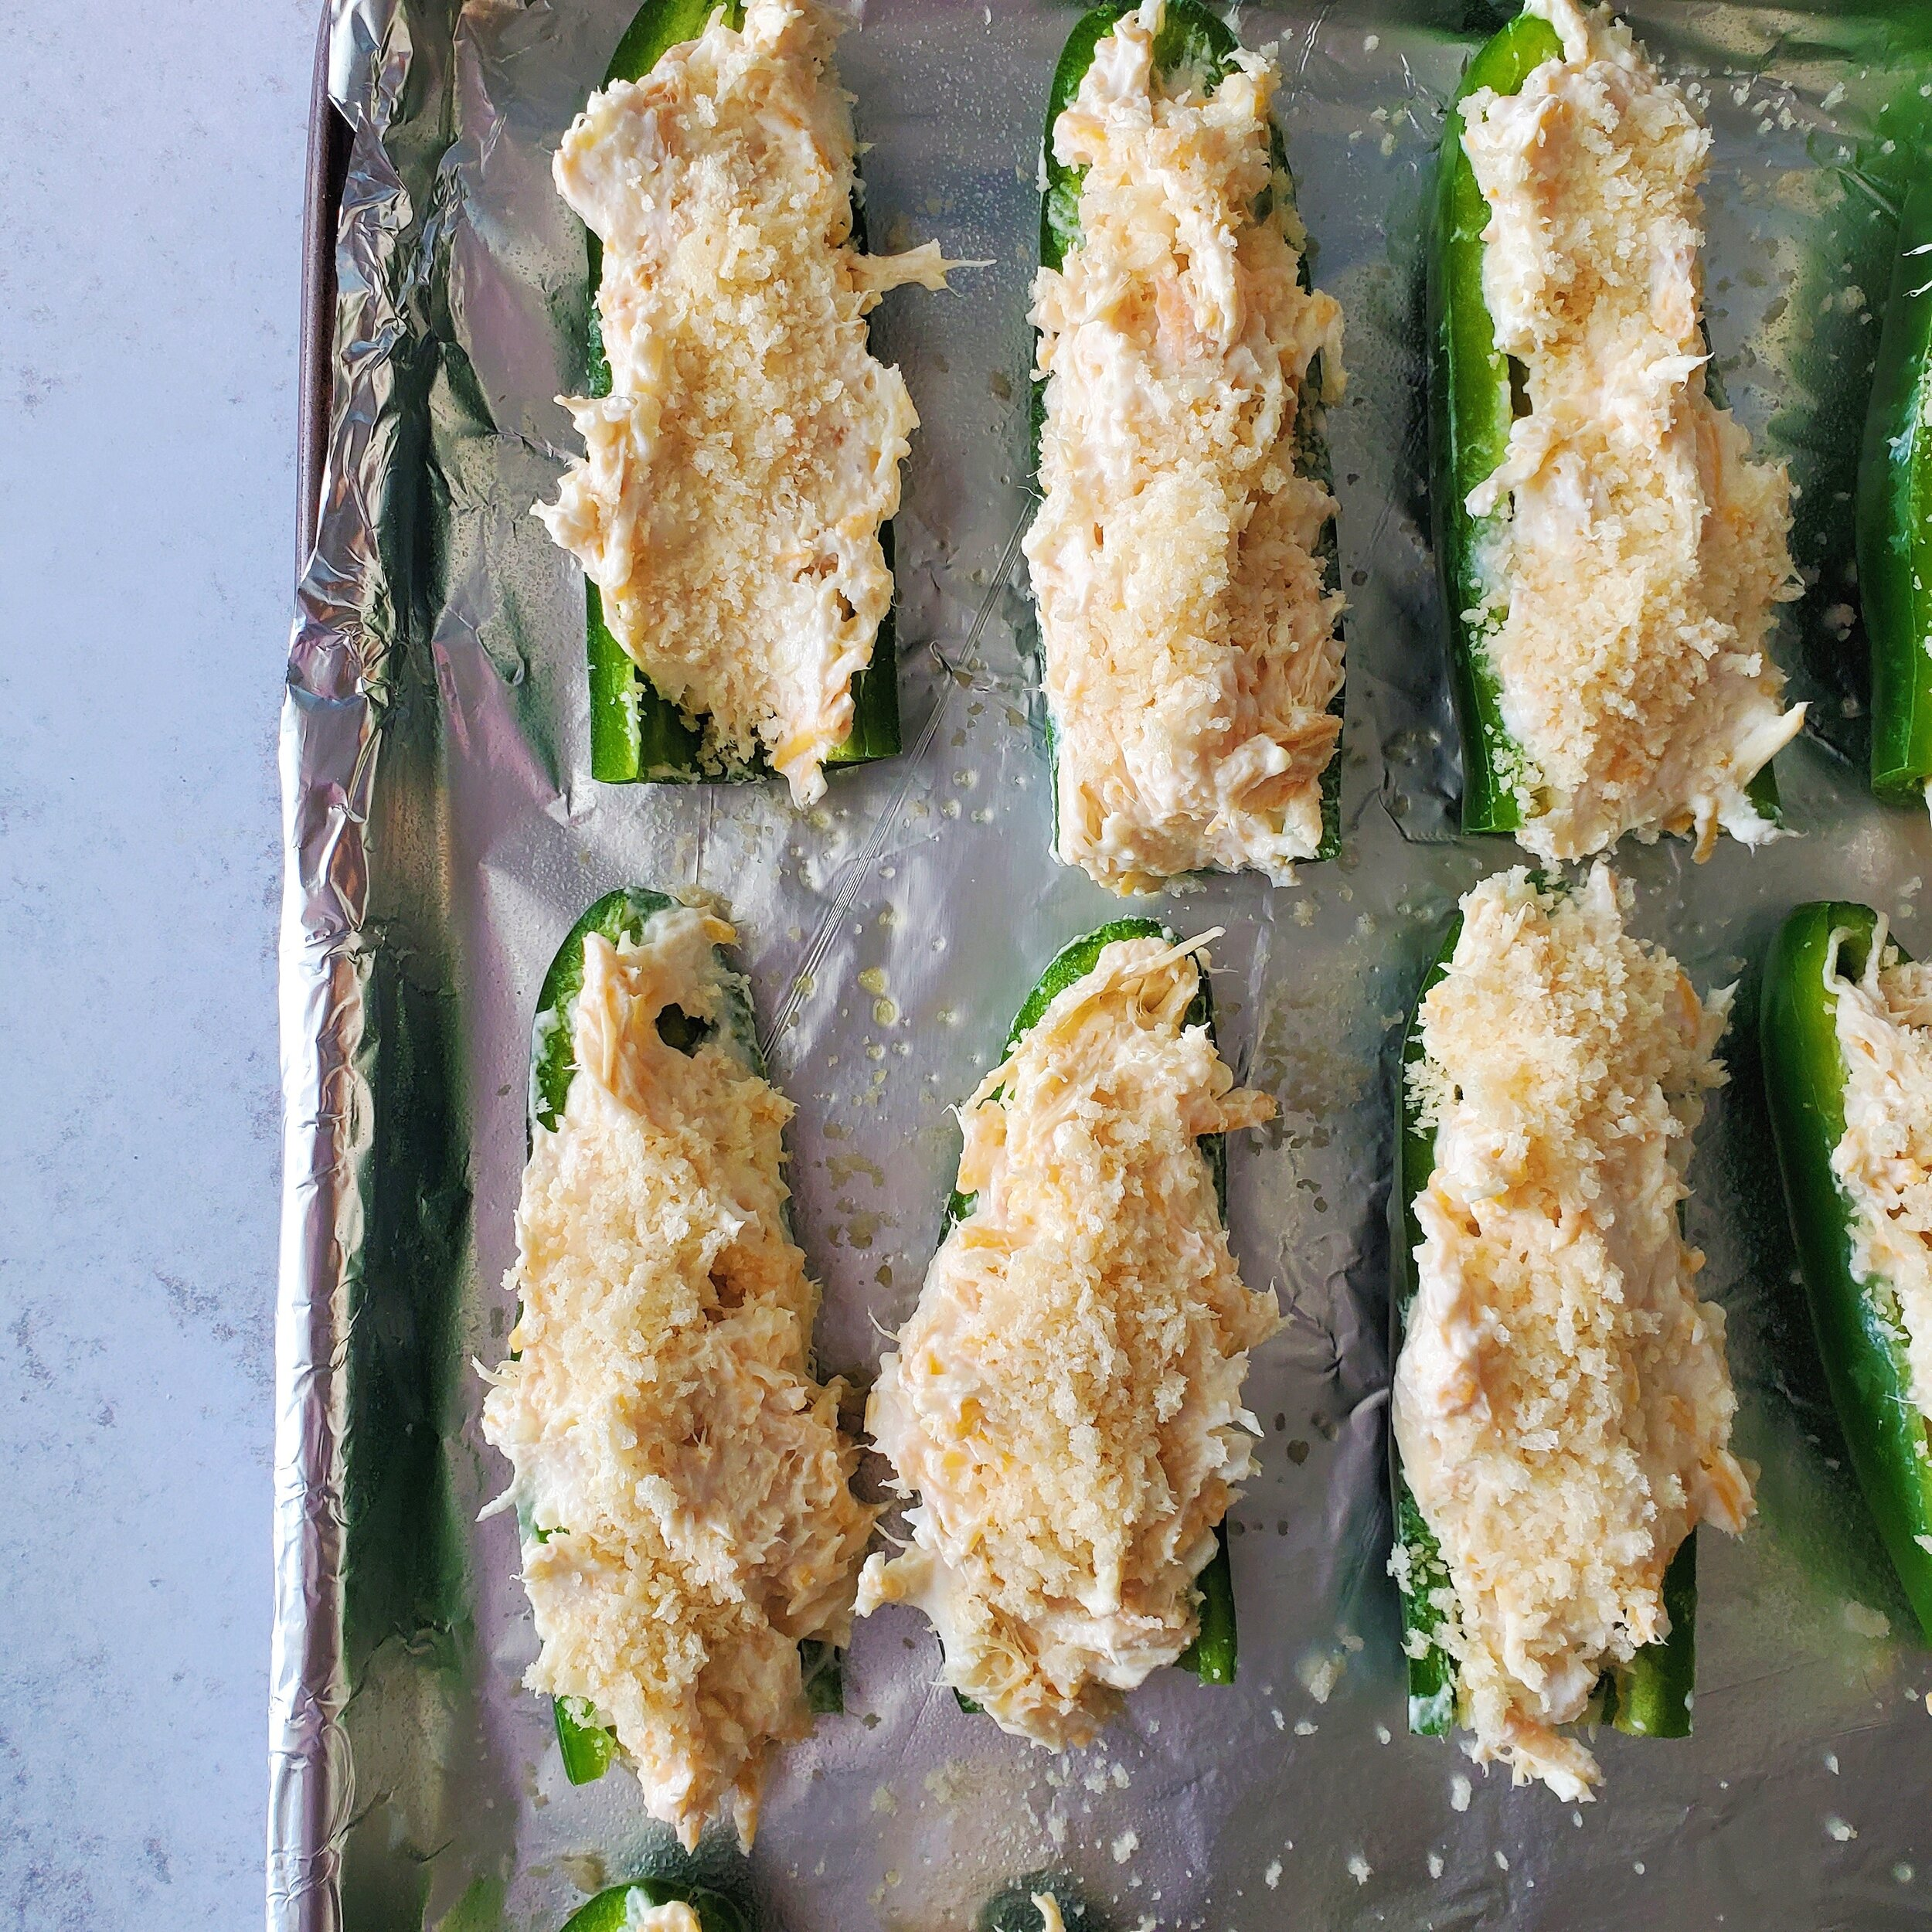 Line a cookie sheet with aluminum foil, then spray with non stick spray.With a small spoon add the filling to each jalapeno. Spread the filling so it is even.Next sprinkle the bread crumbs on top. Bake at 375 for 15 minutes. -